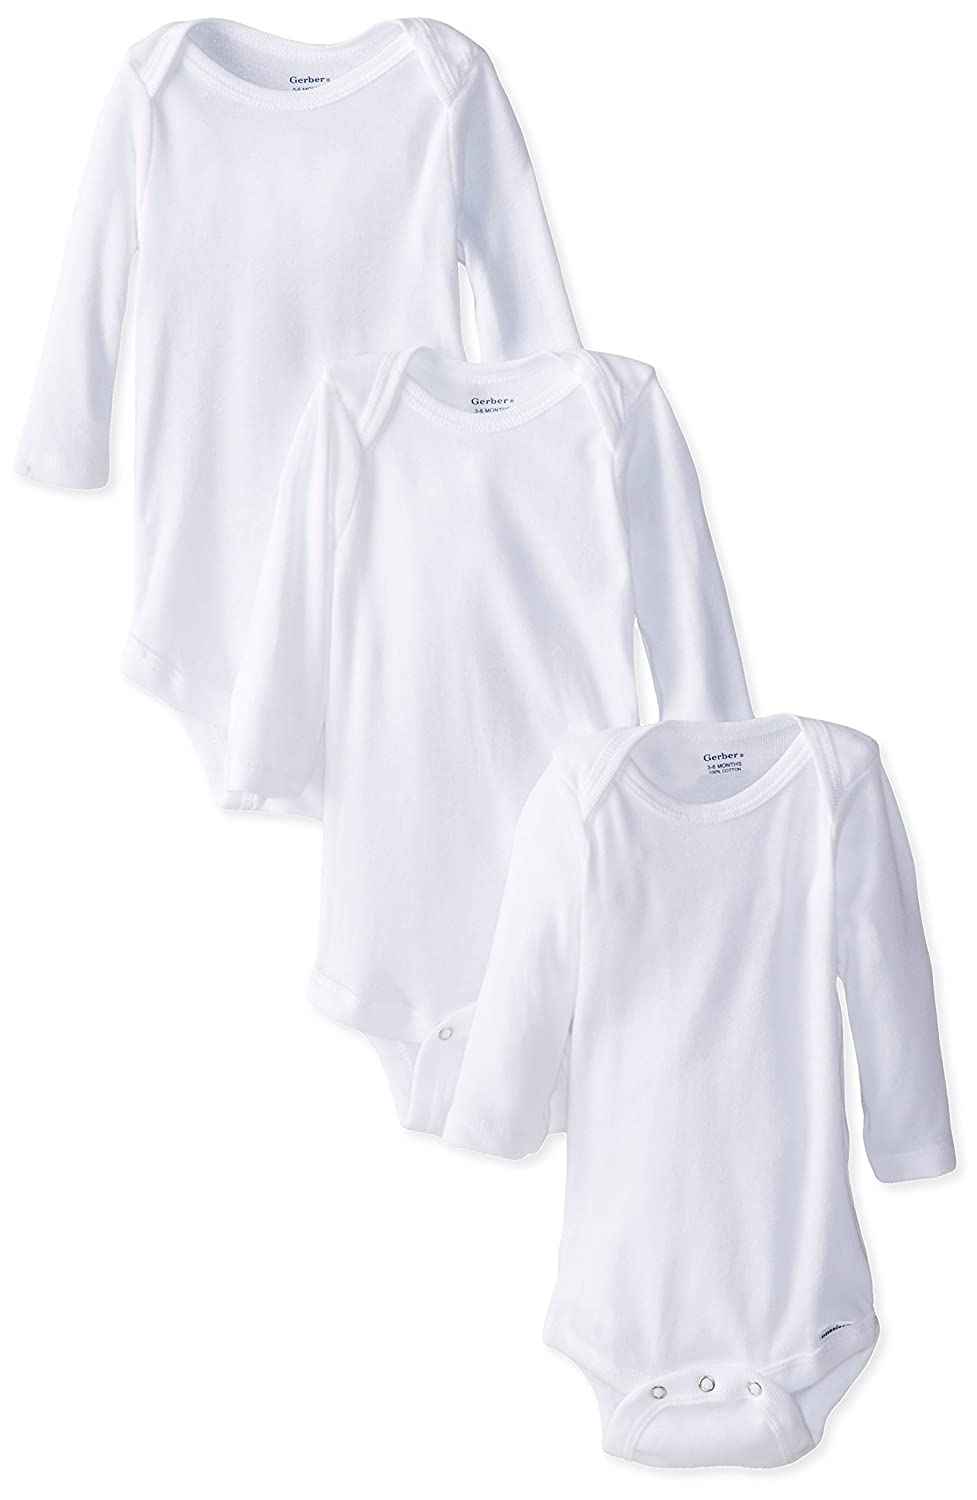 Gerber Baby Girls' 3 Pack Long Sleeve Onesies Gerber Children's Apparel